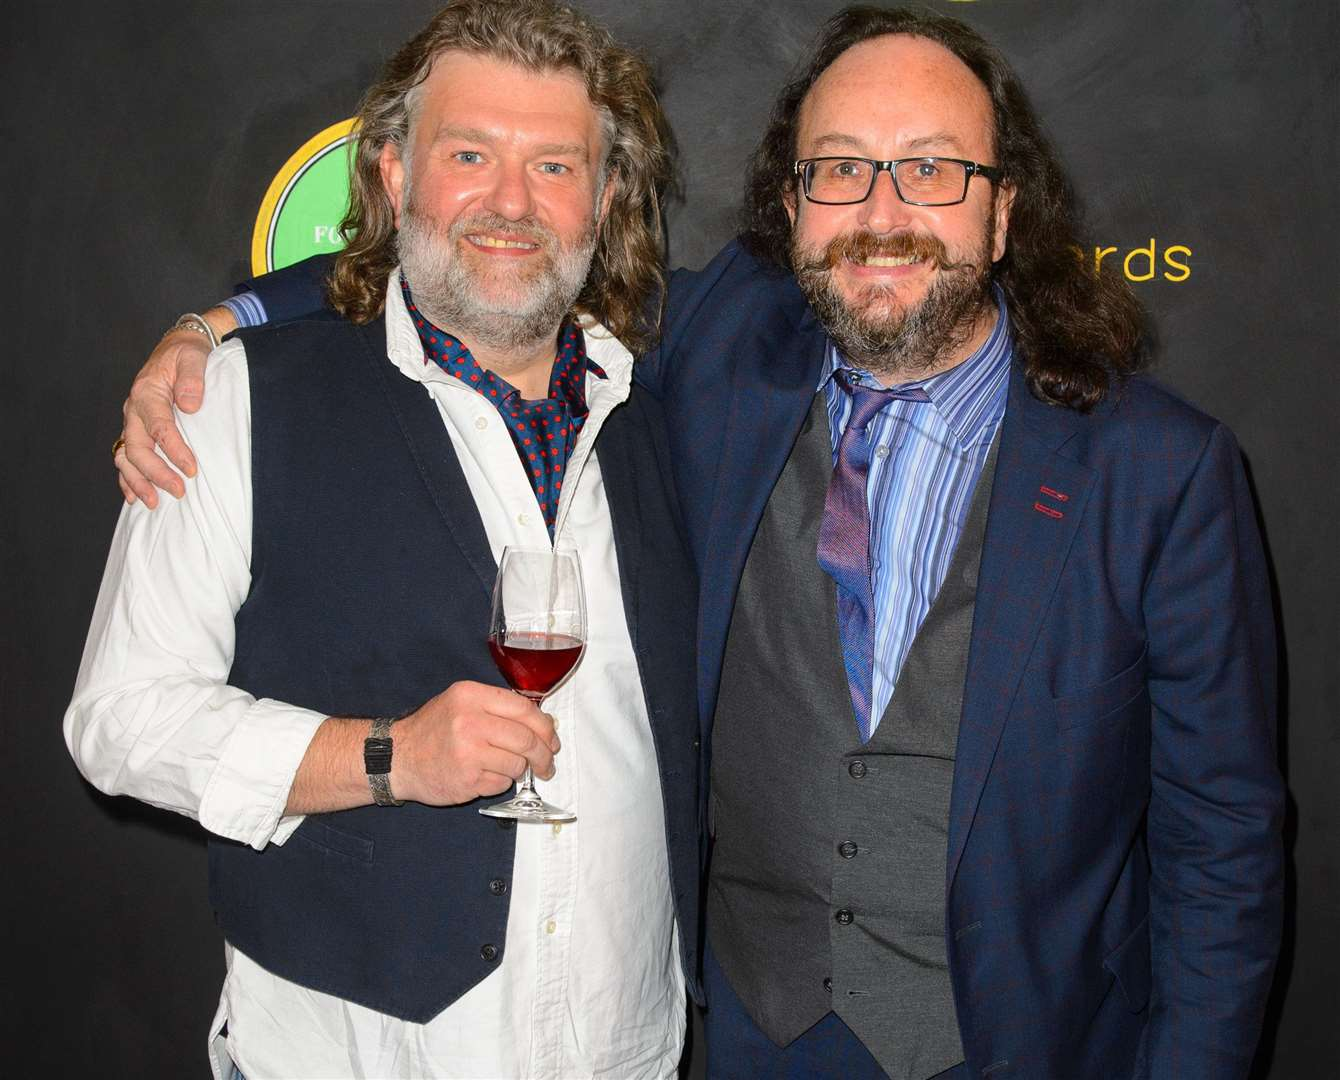 Si King and Dave Myers, The Hairy Bikers, will be on stage in Kent Picture: PA Photos